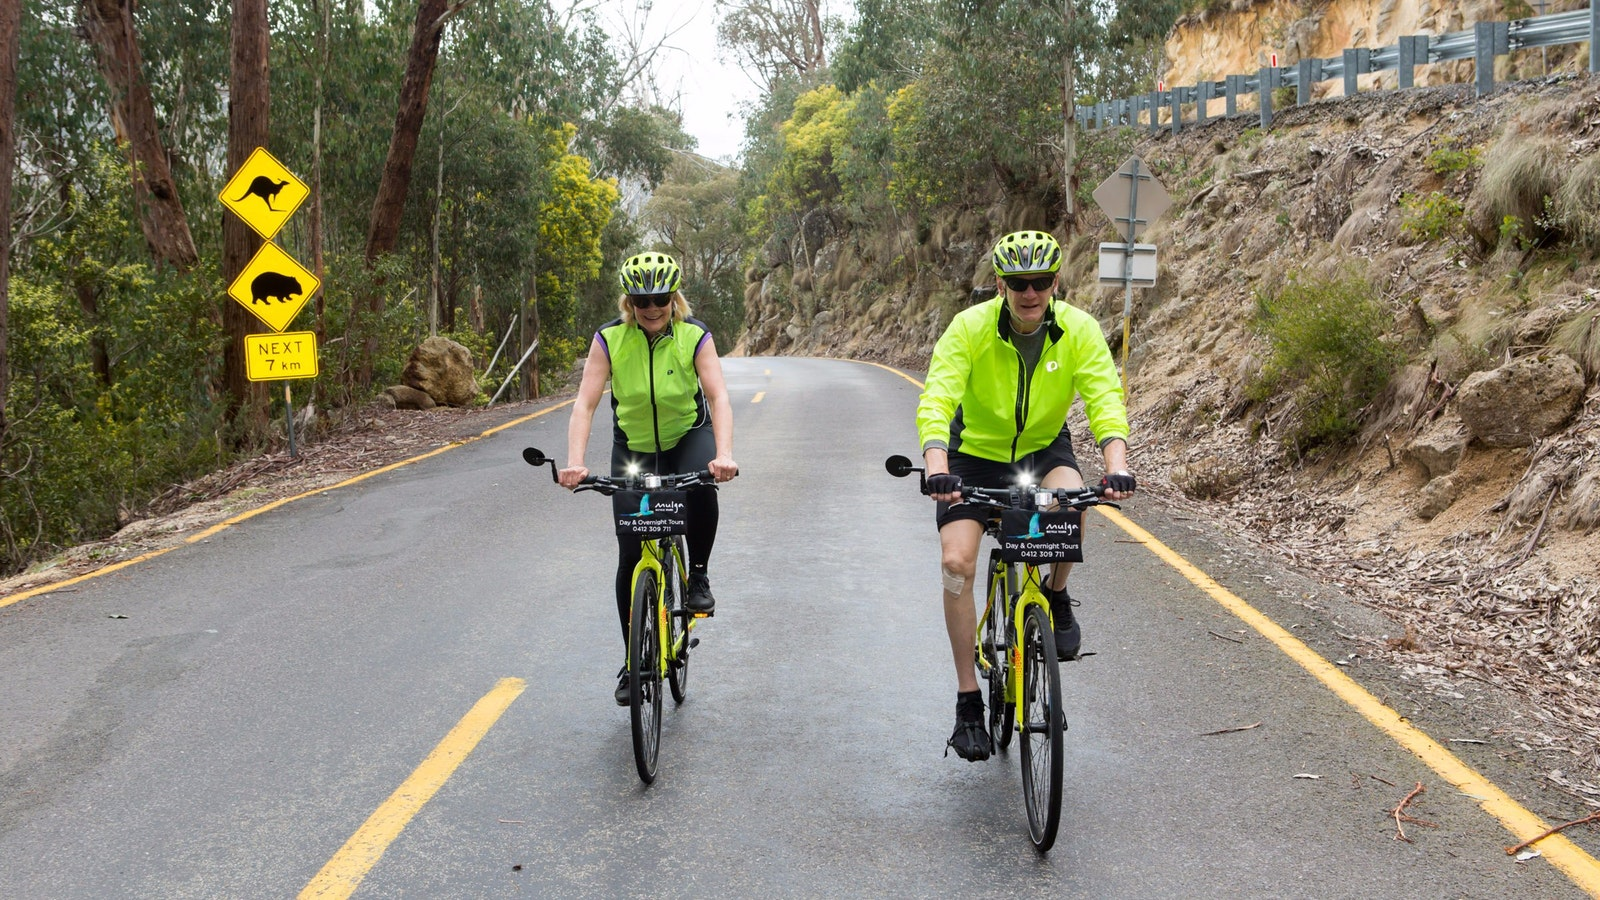 cyclists side by side on road. Kangaroo and Wombat warning signs behind them